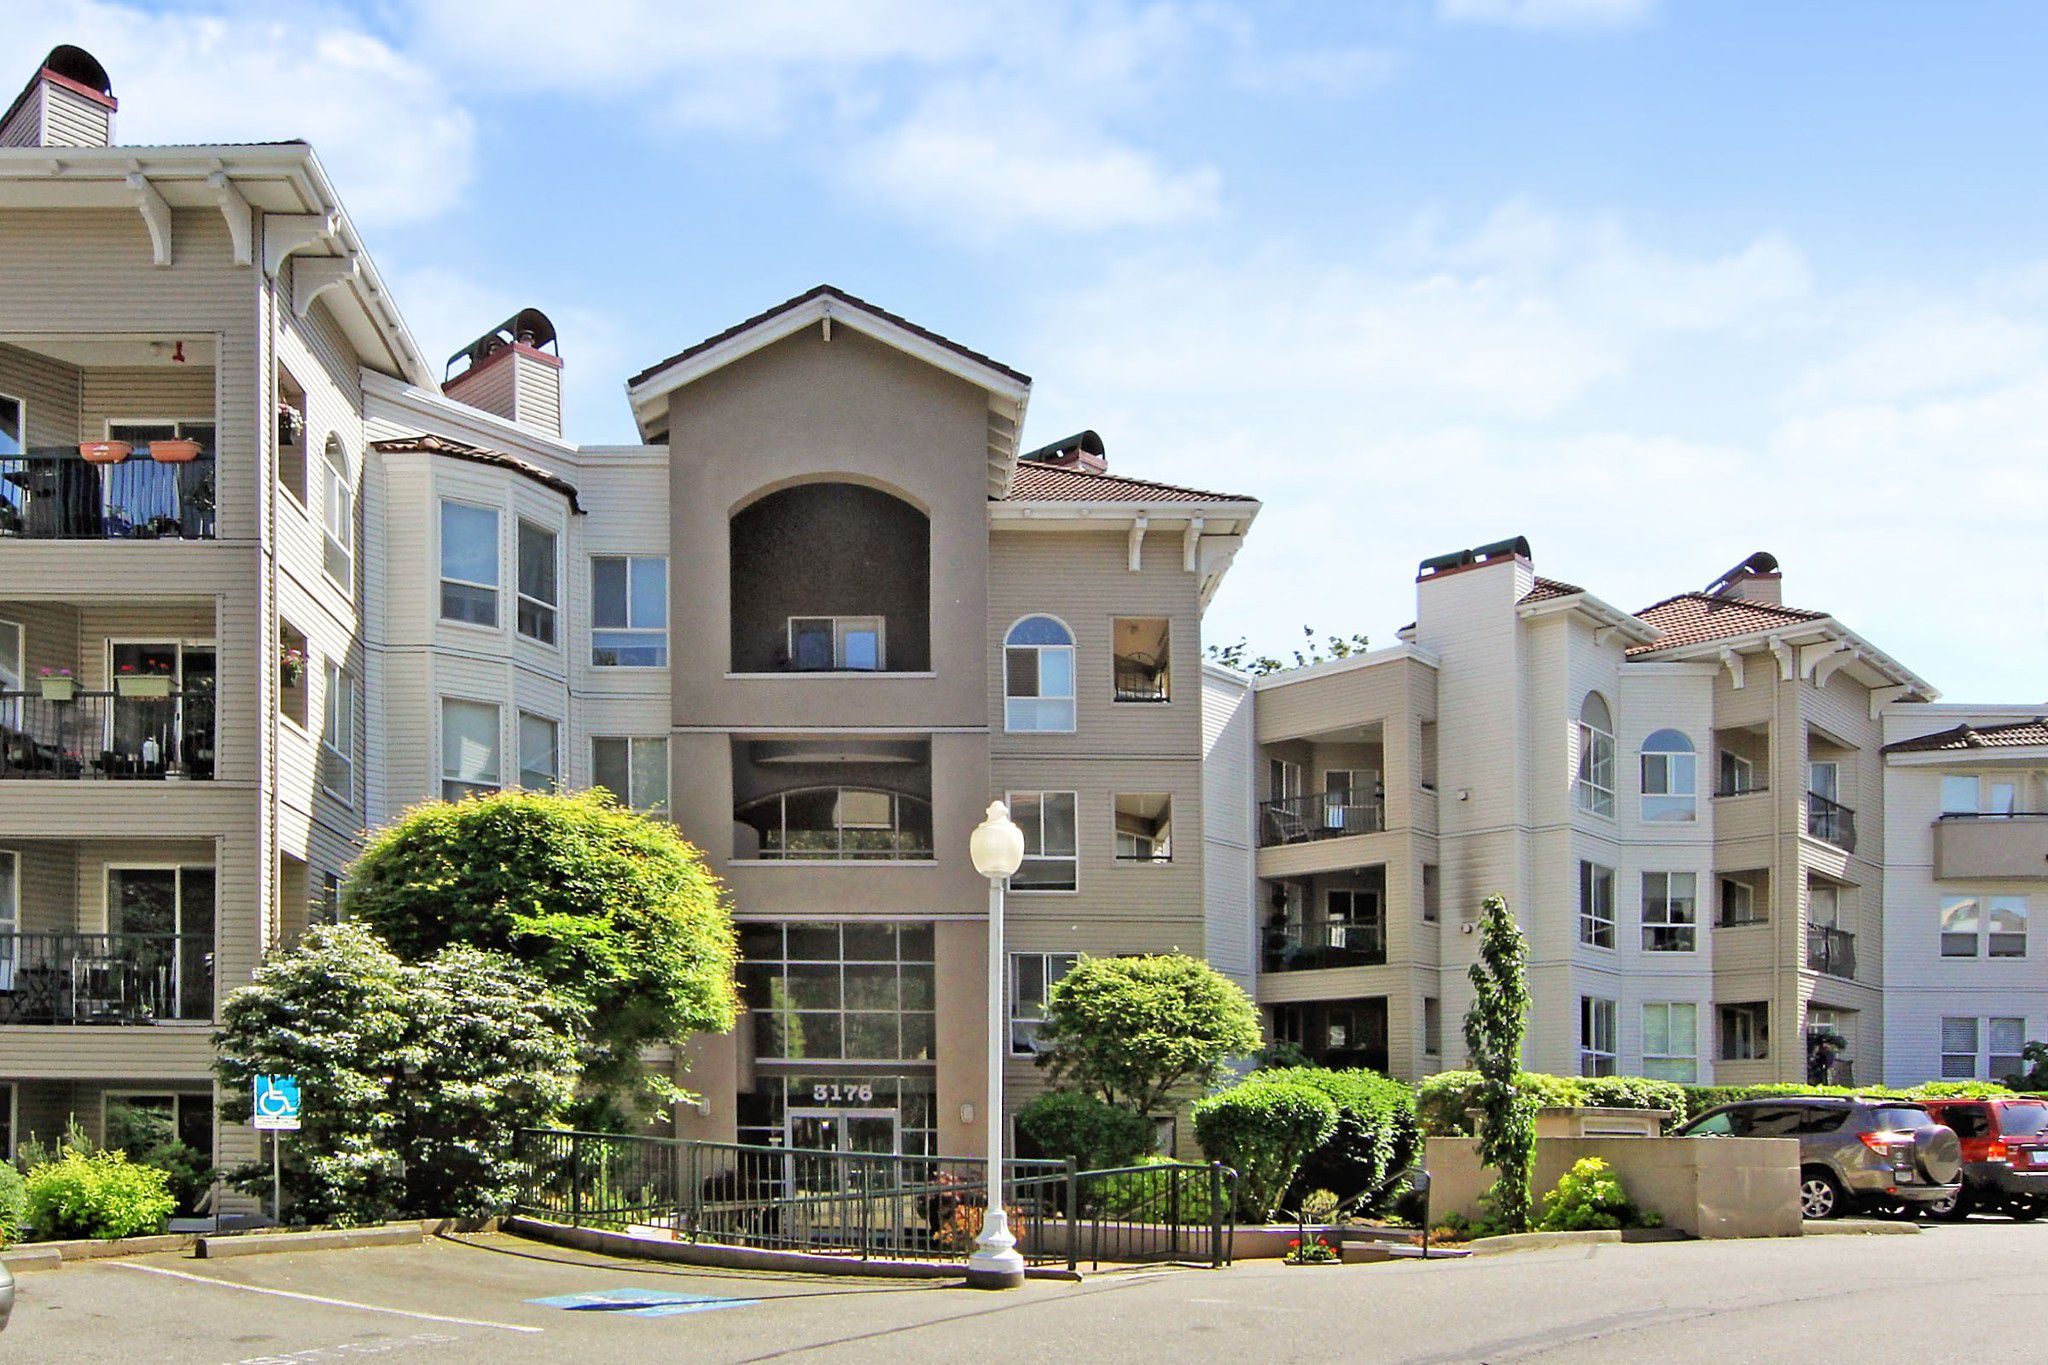 """Main Photo: 107 3176 GLADWIN Road in Abbotsford: Central Abbotsford Condo for sale in """"Regency Park"""" : MLS®# R2371135"""